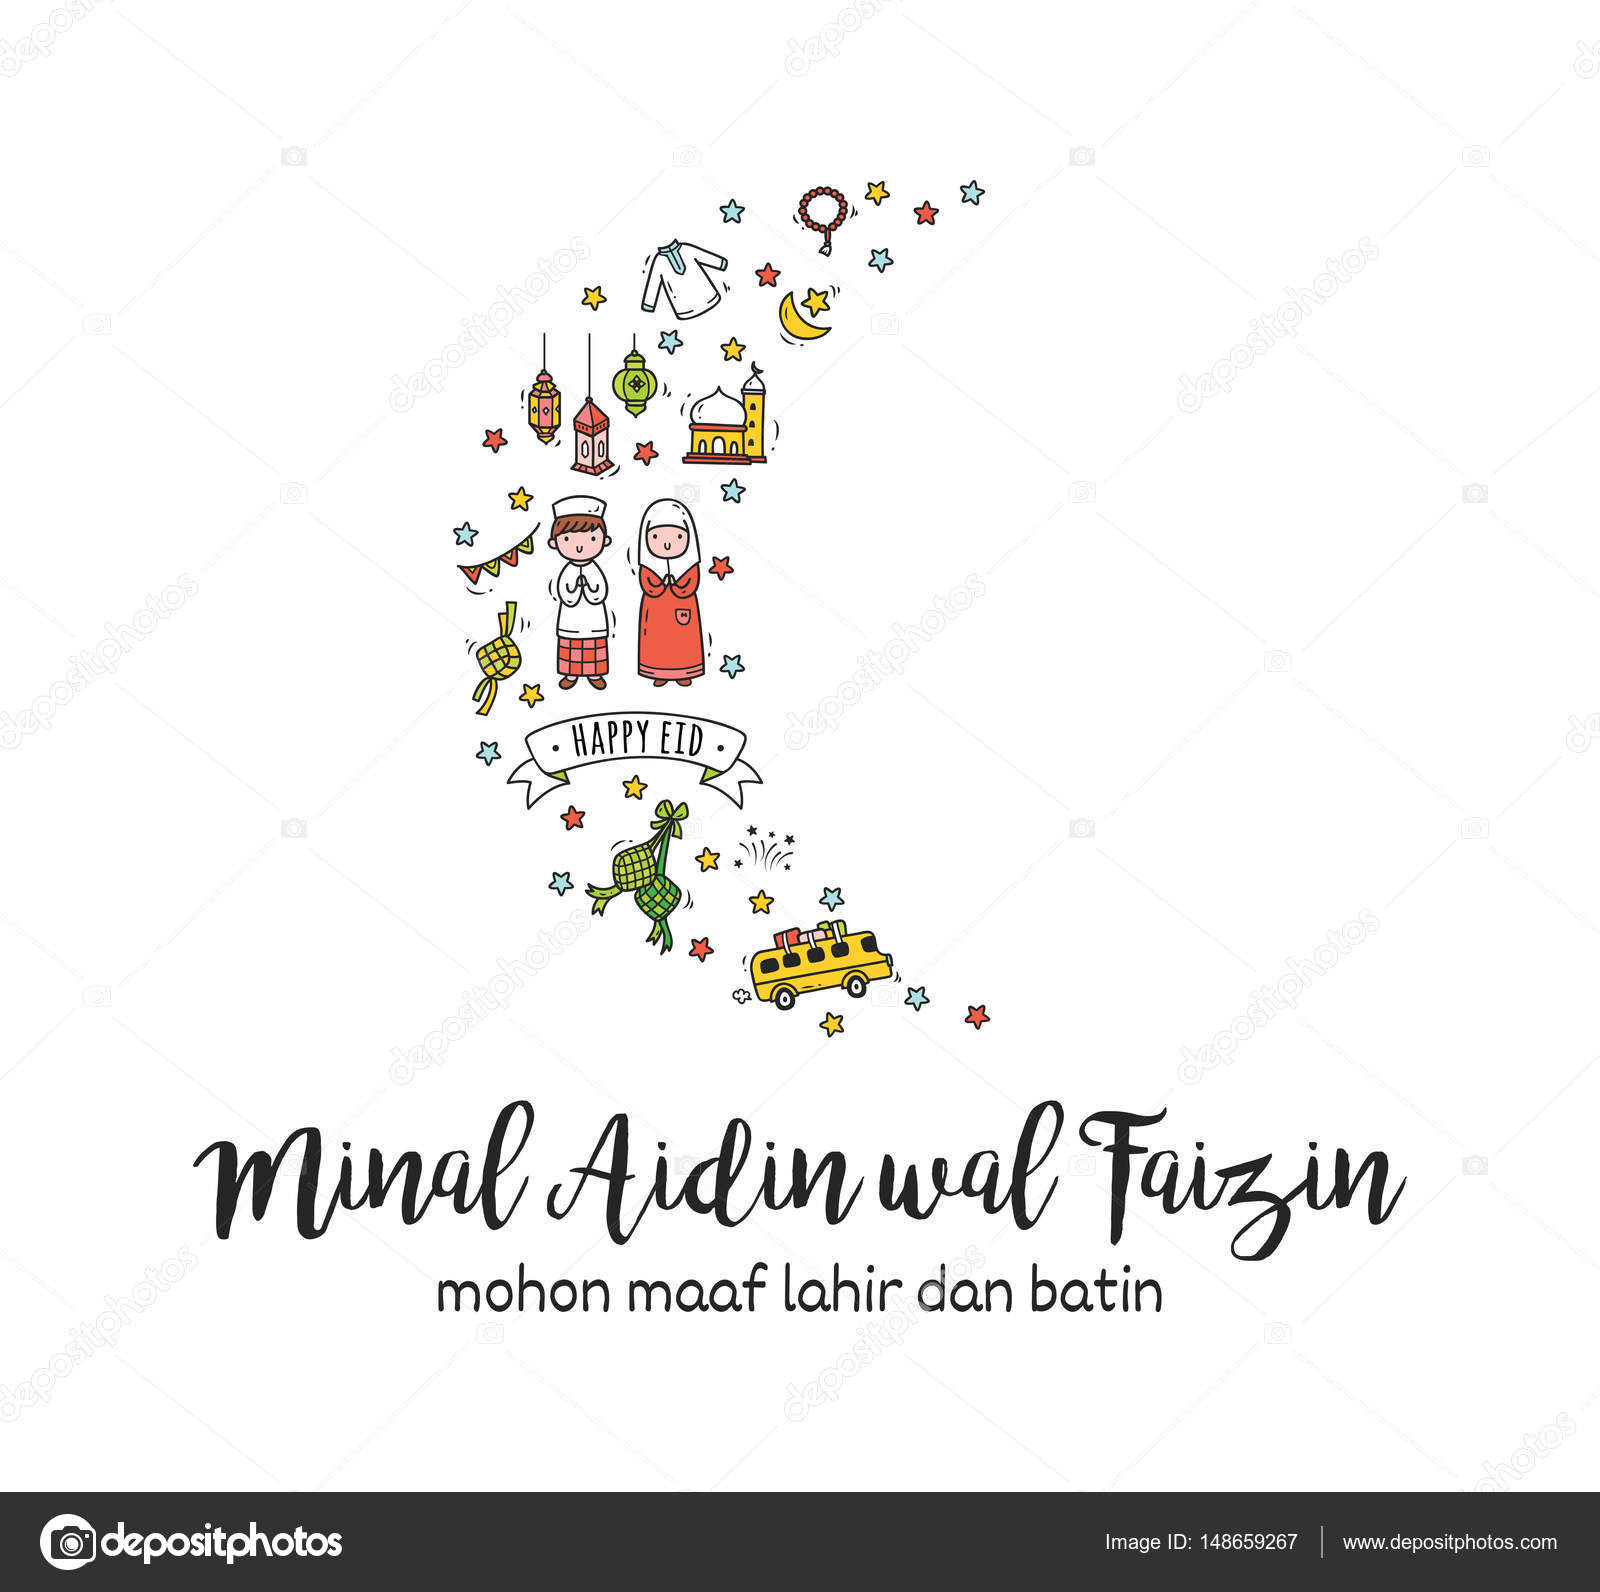 Indonesian idul fitri greeting card stock vector mhatzapa 148659267 indonesian idul fitri greeting card stock vector m4hsunfo